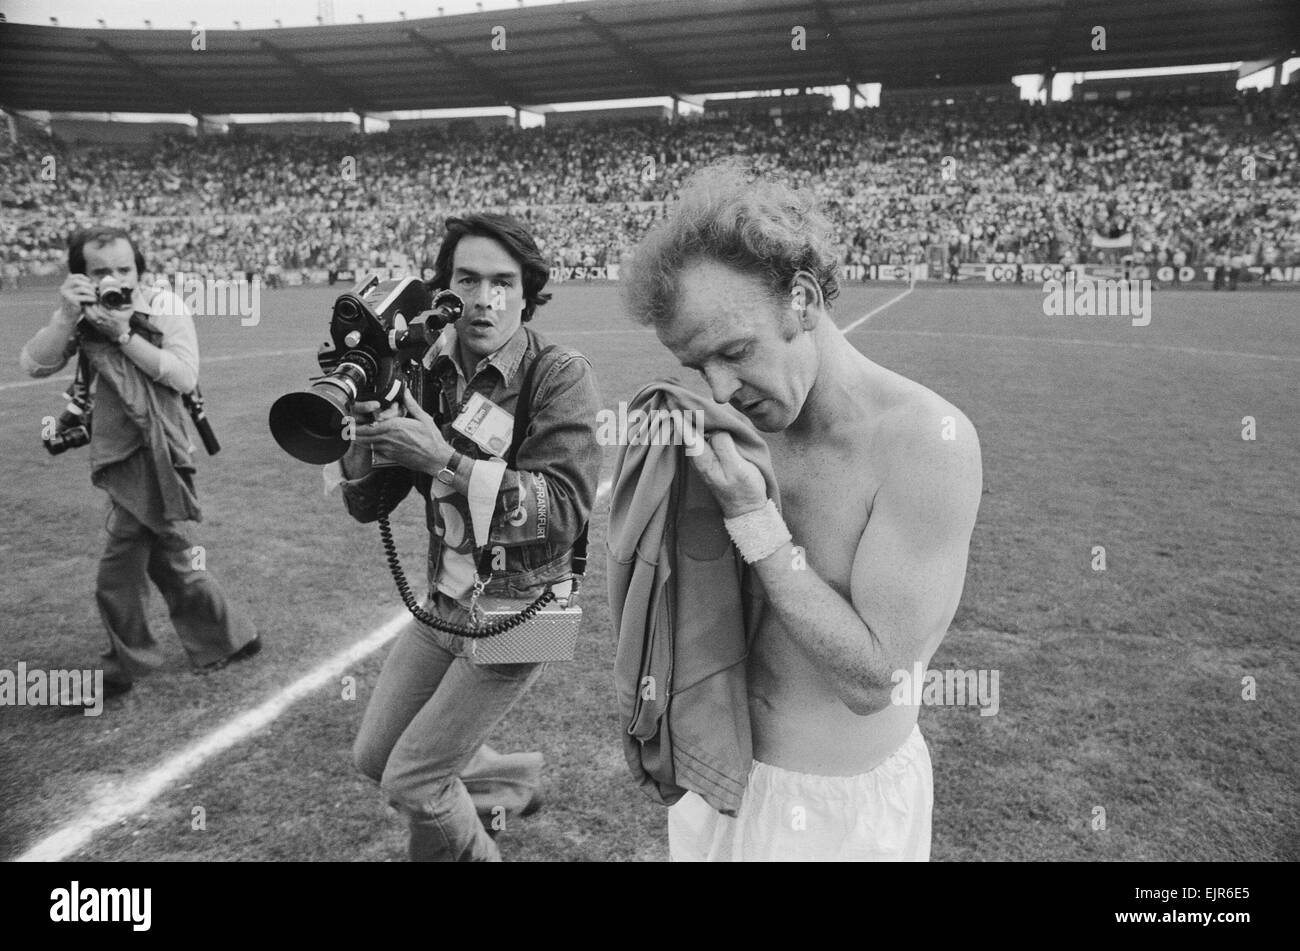 1974 World Cup Group Three match in Frankfurt, West Germany. Scotland 1 v Yugoslavia 1. Scotland's Billy Bremner - Stock Image